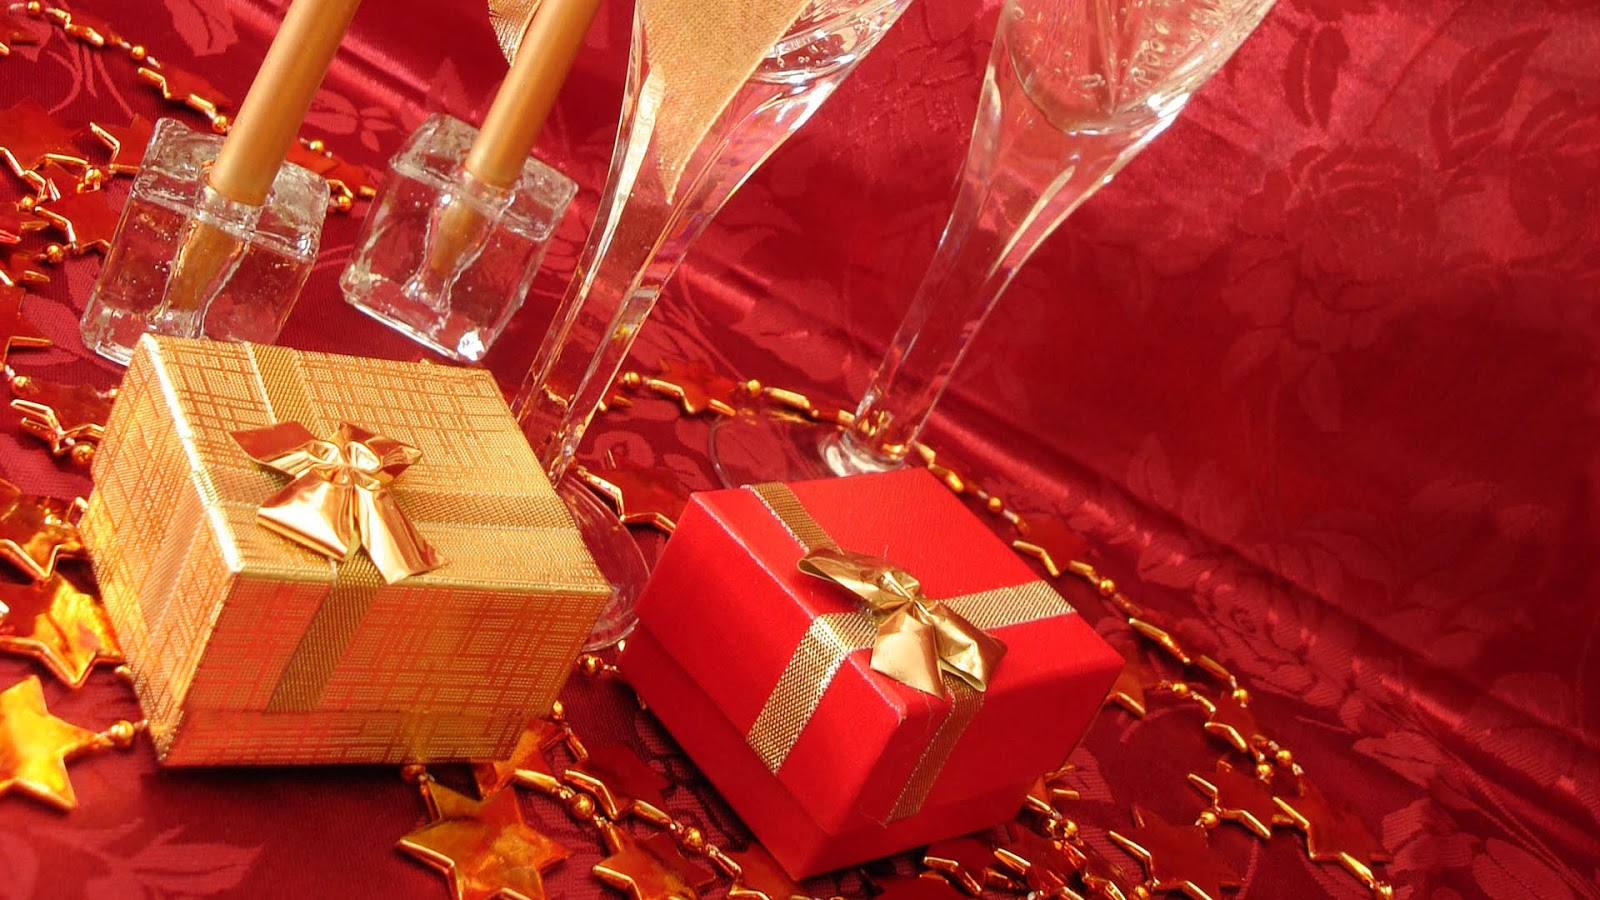 New Year And Merry christmas Gifts HD Wallpapers,Pictures And Images - HD Wallpapers Blog